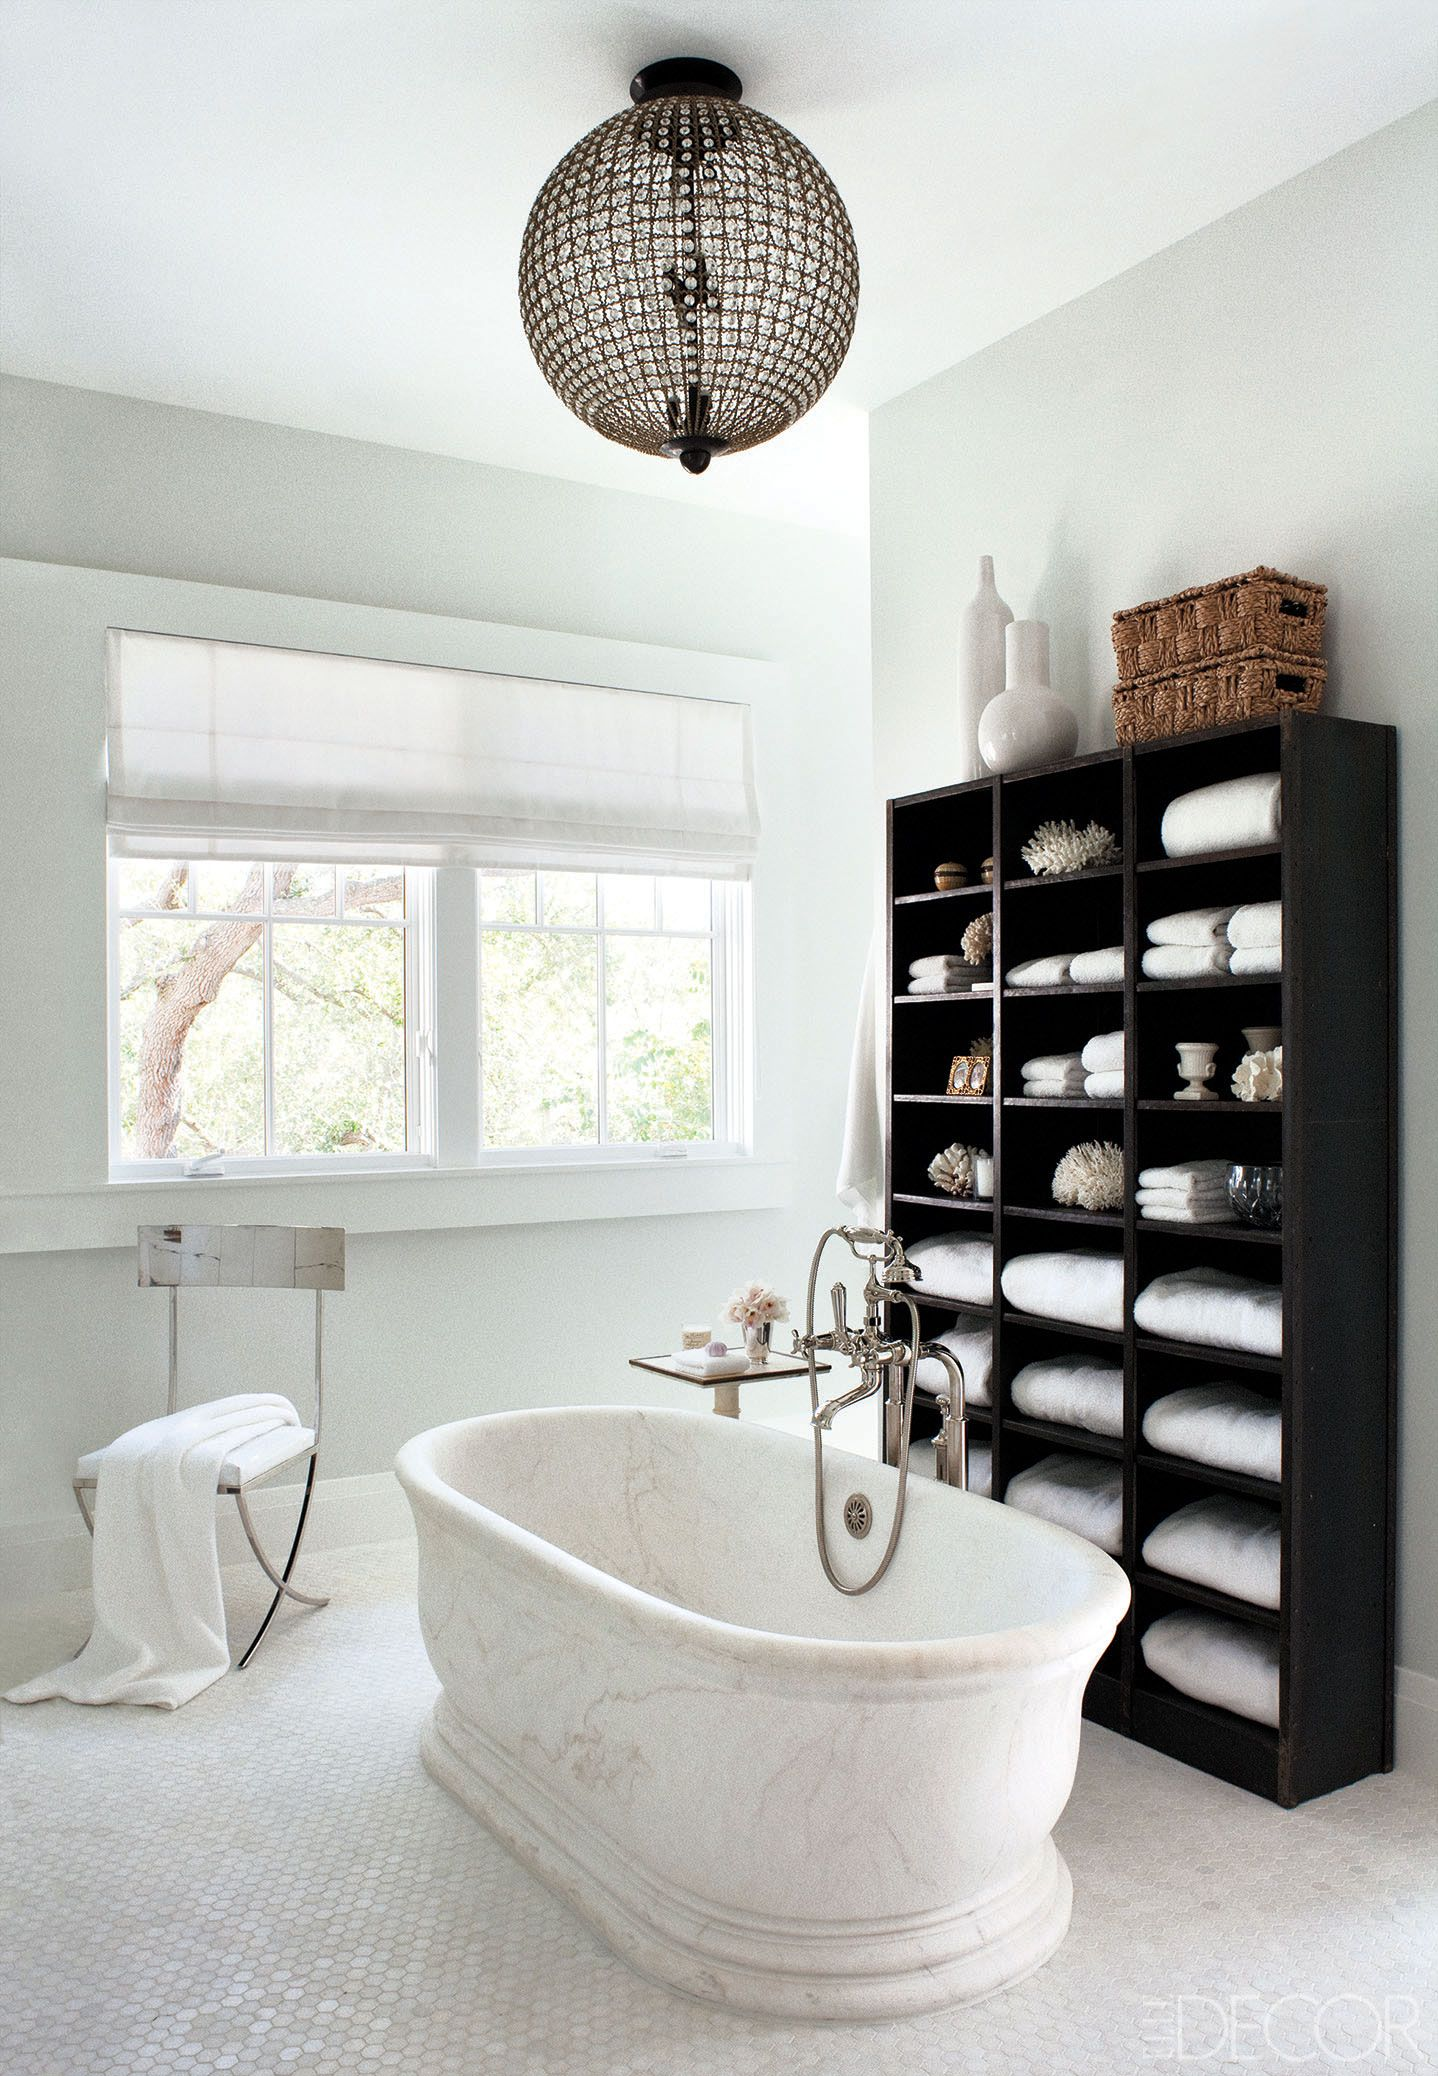 Black and white bathroom decor - Black And White Bathroom Decor 18